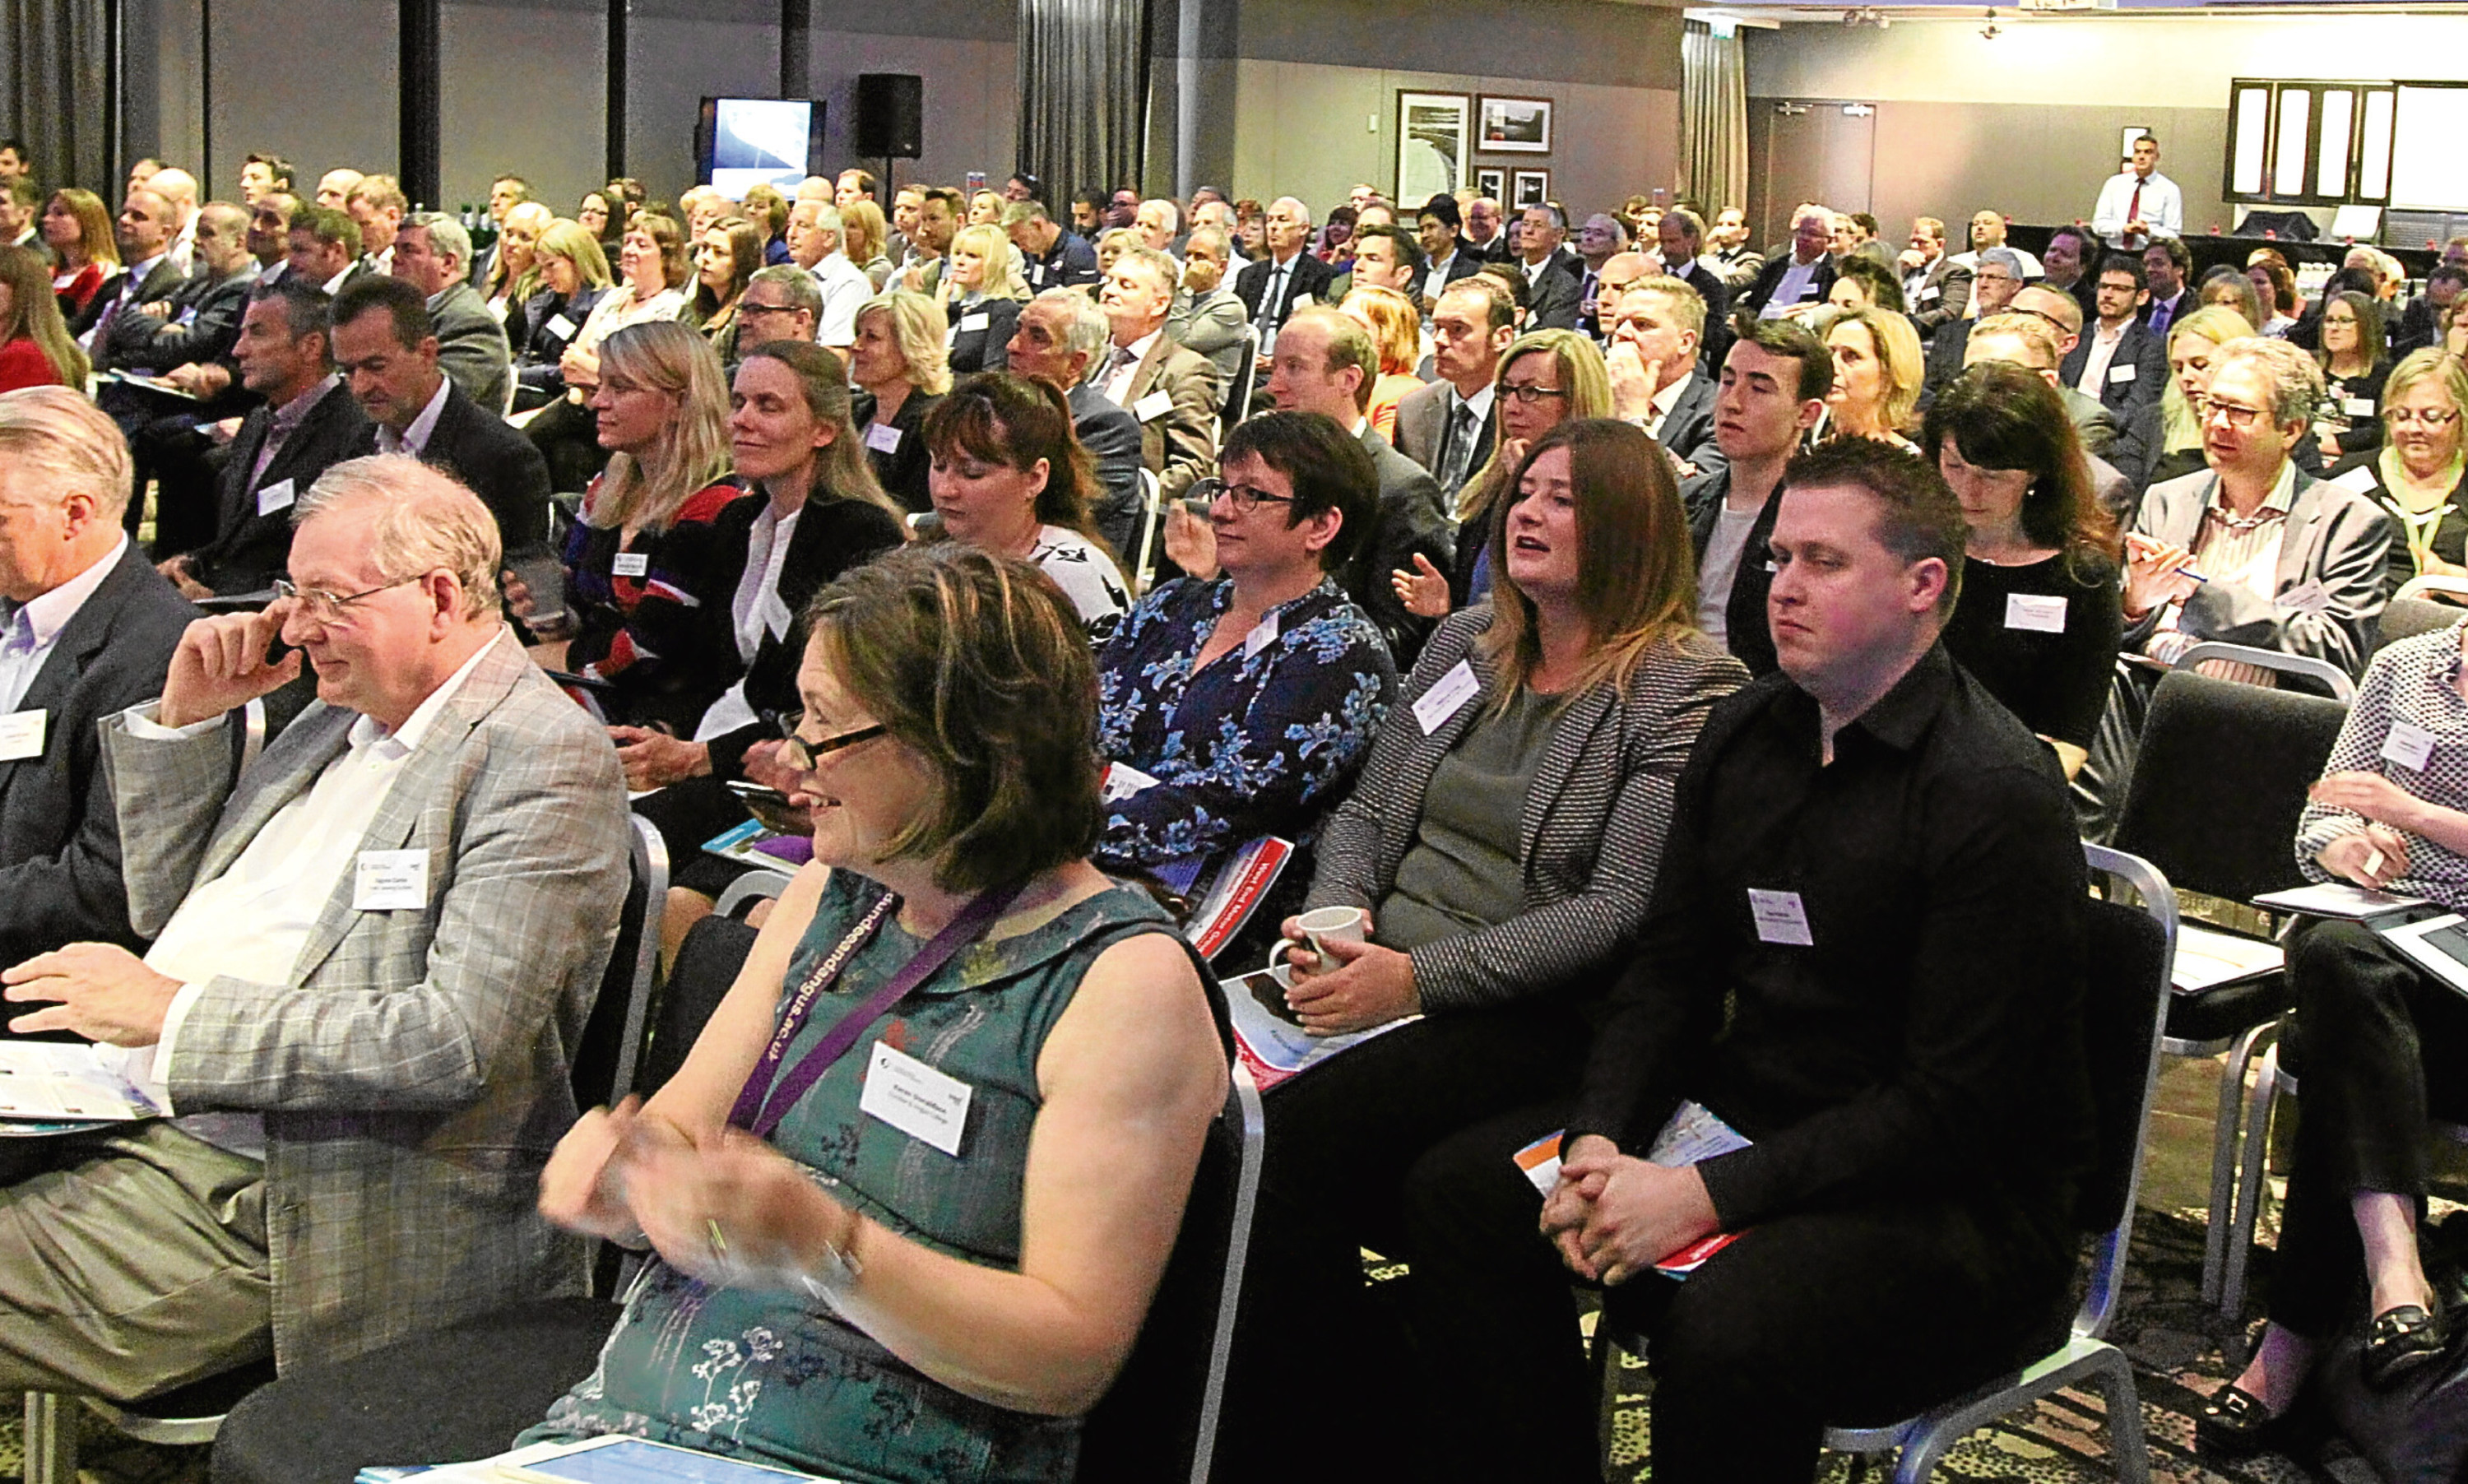 Scores of local business leaders turned out for the Dundee Economic Summit